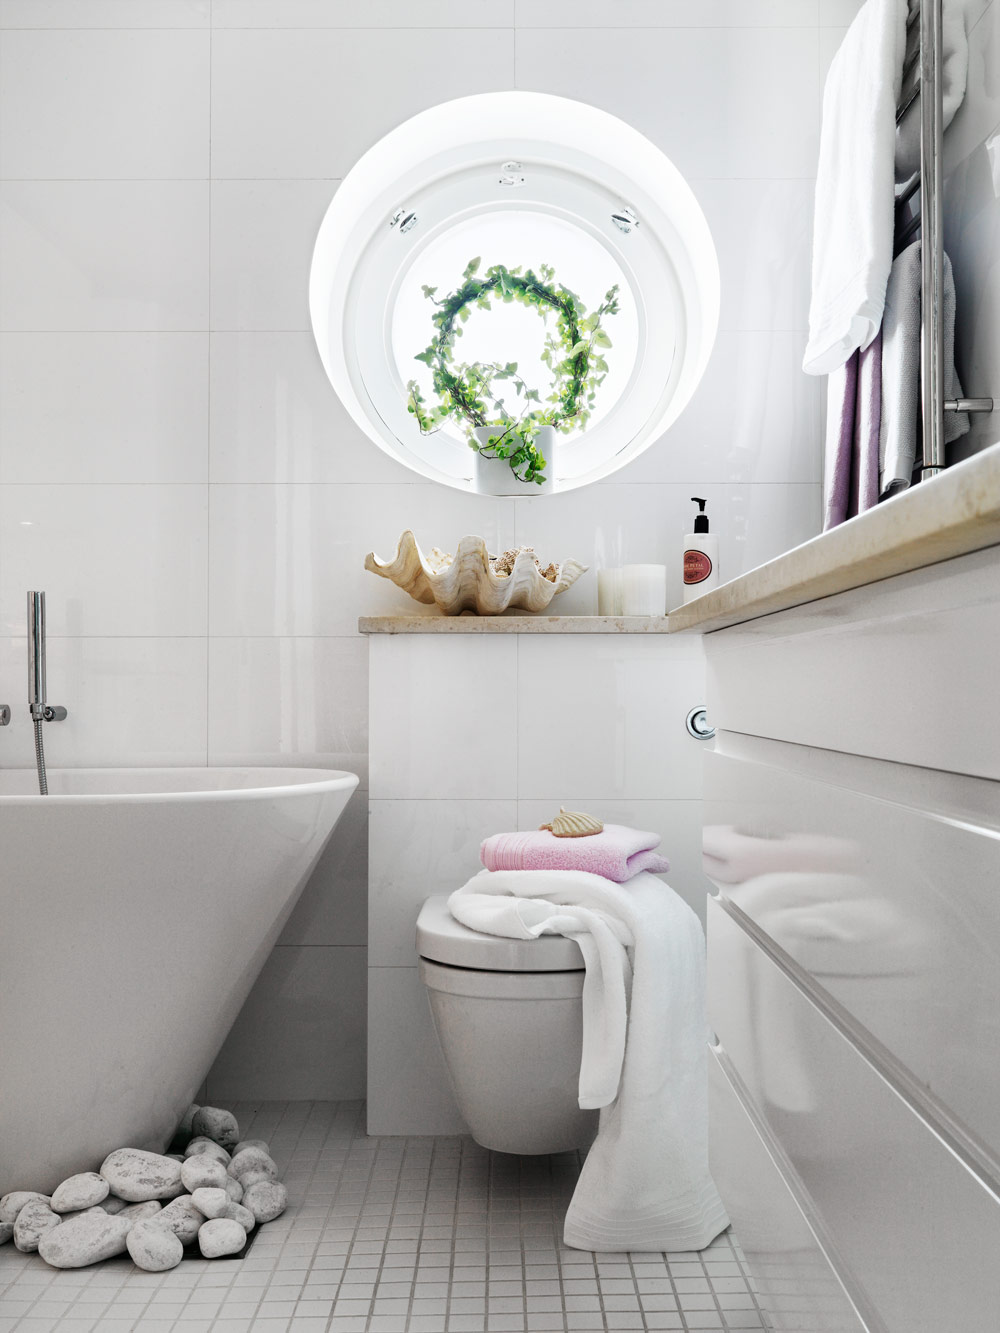 Stylish small bathroom with an unusual decor digsdigs for Toilet design ideas